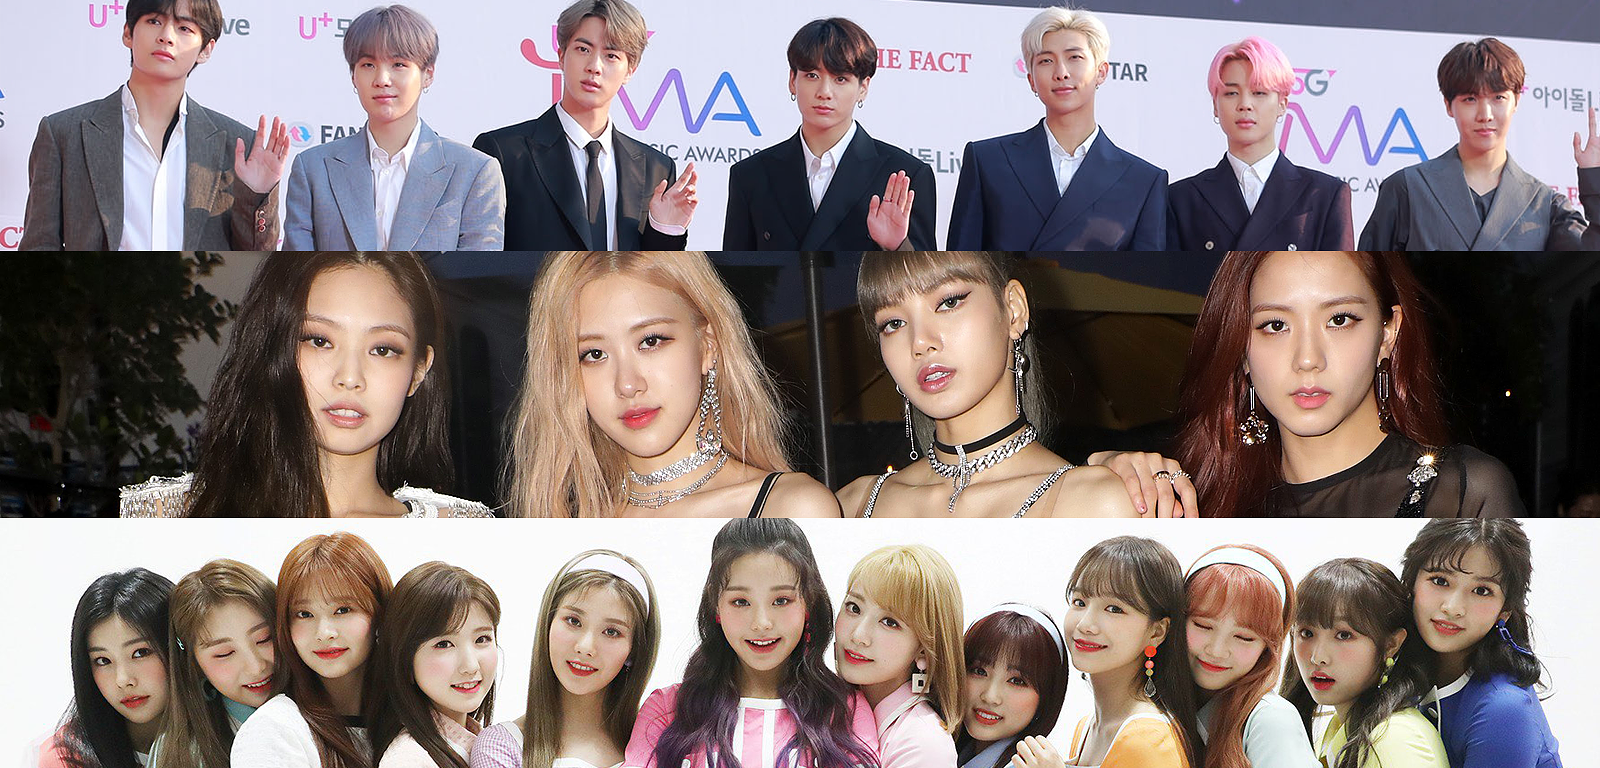 Check out the reputation rankings of April's K-Pop bands